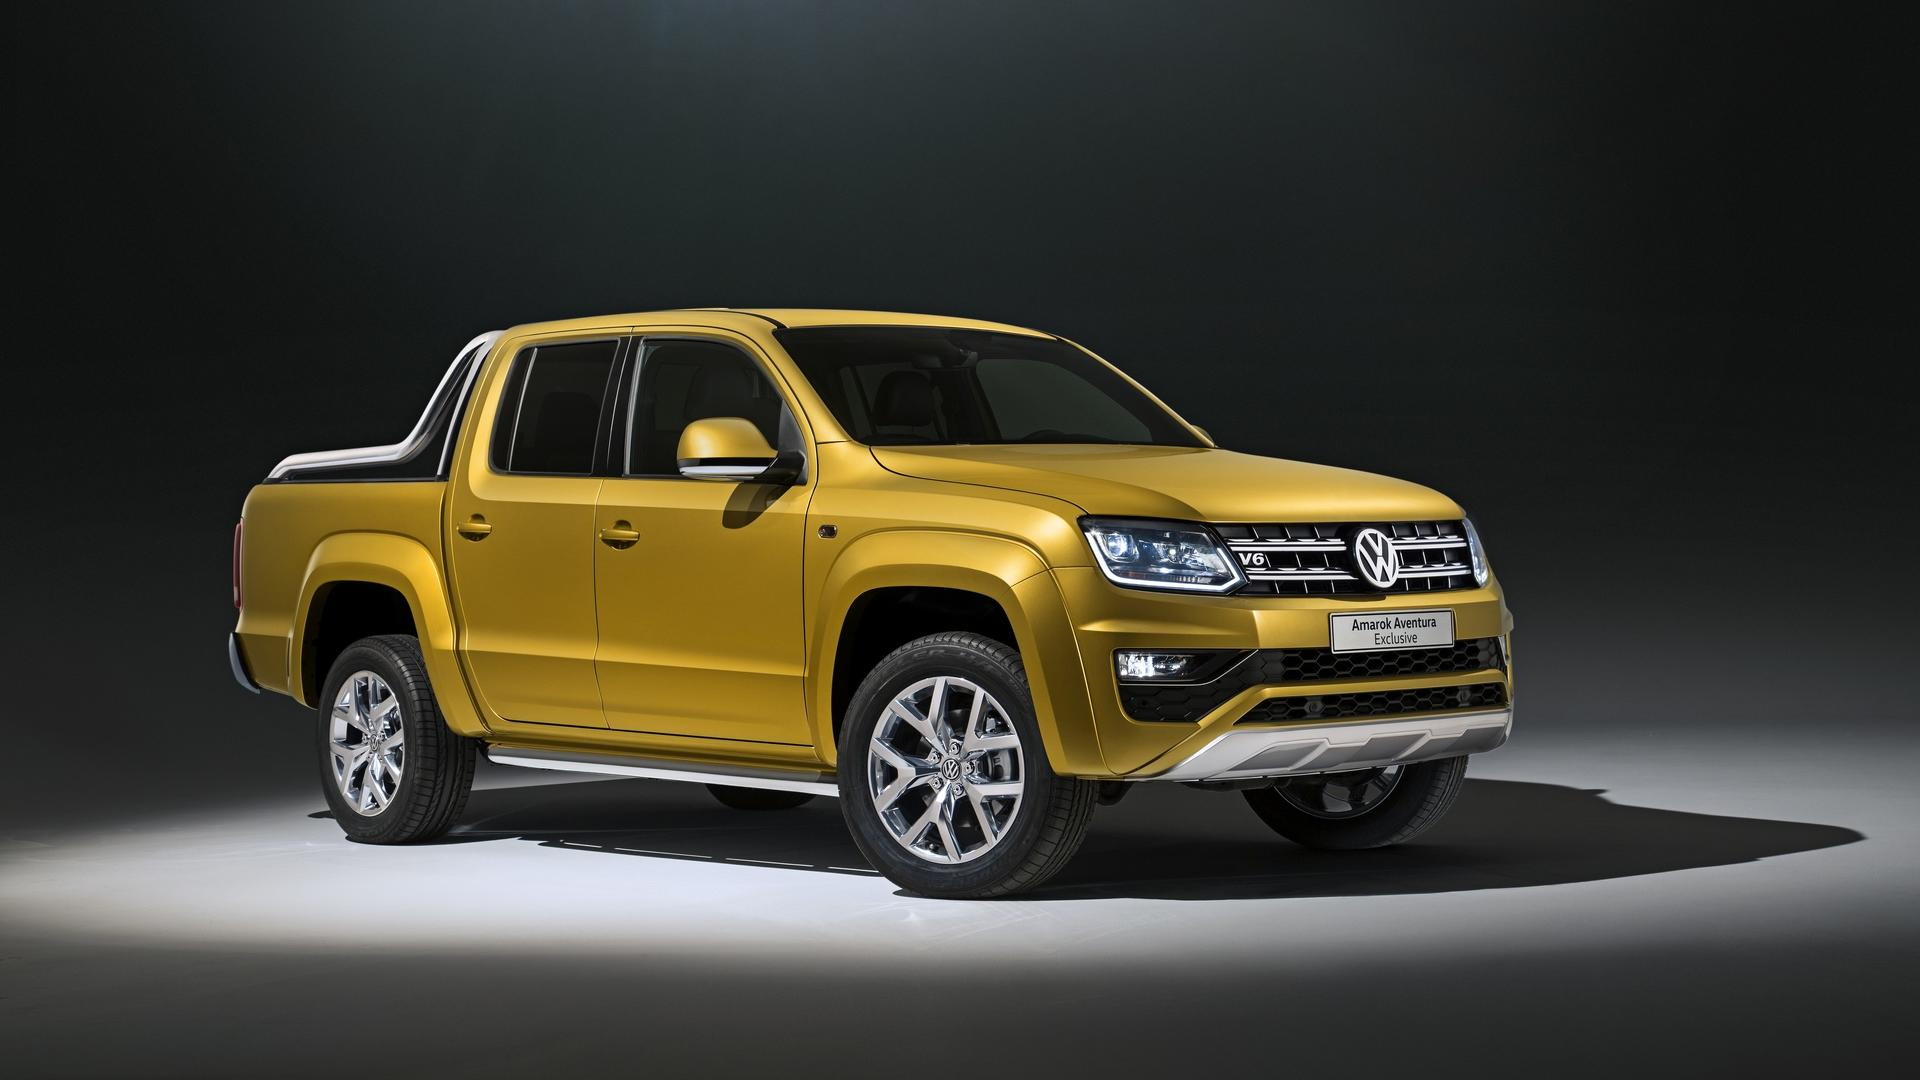 volkswagen amarok aventura exclusive concept gets new 3 0 tdi v6 with 258 ps autoevolution. Black Bedroom Furniture Sets. Home Design Ideas